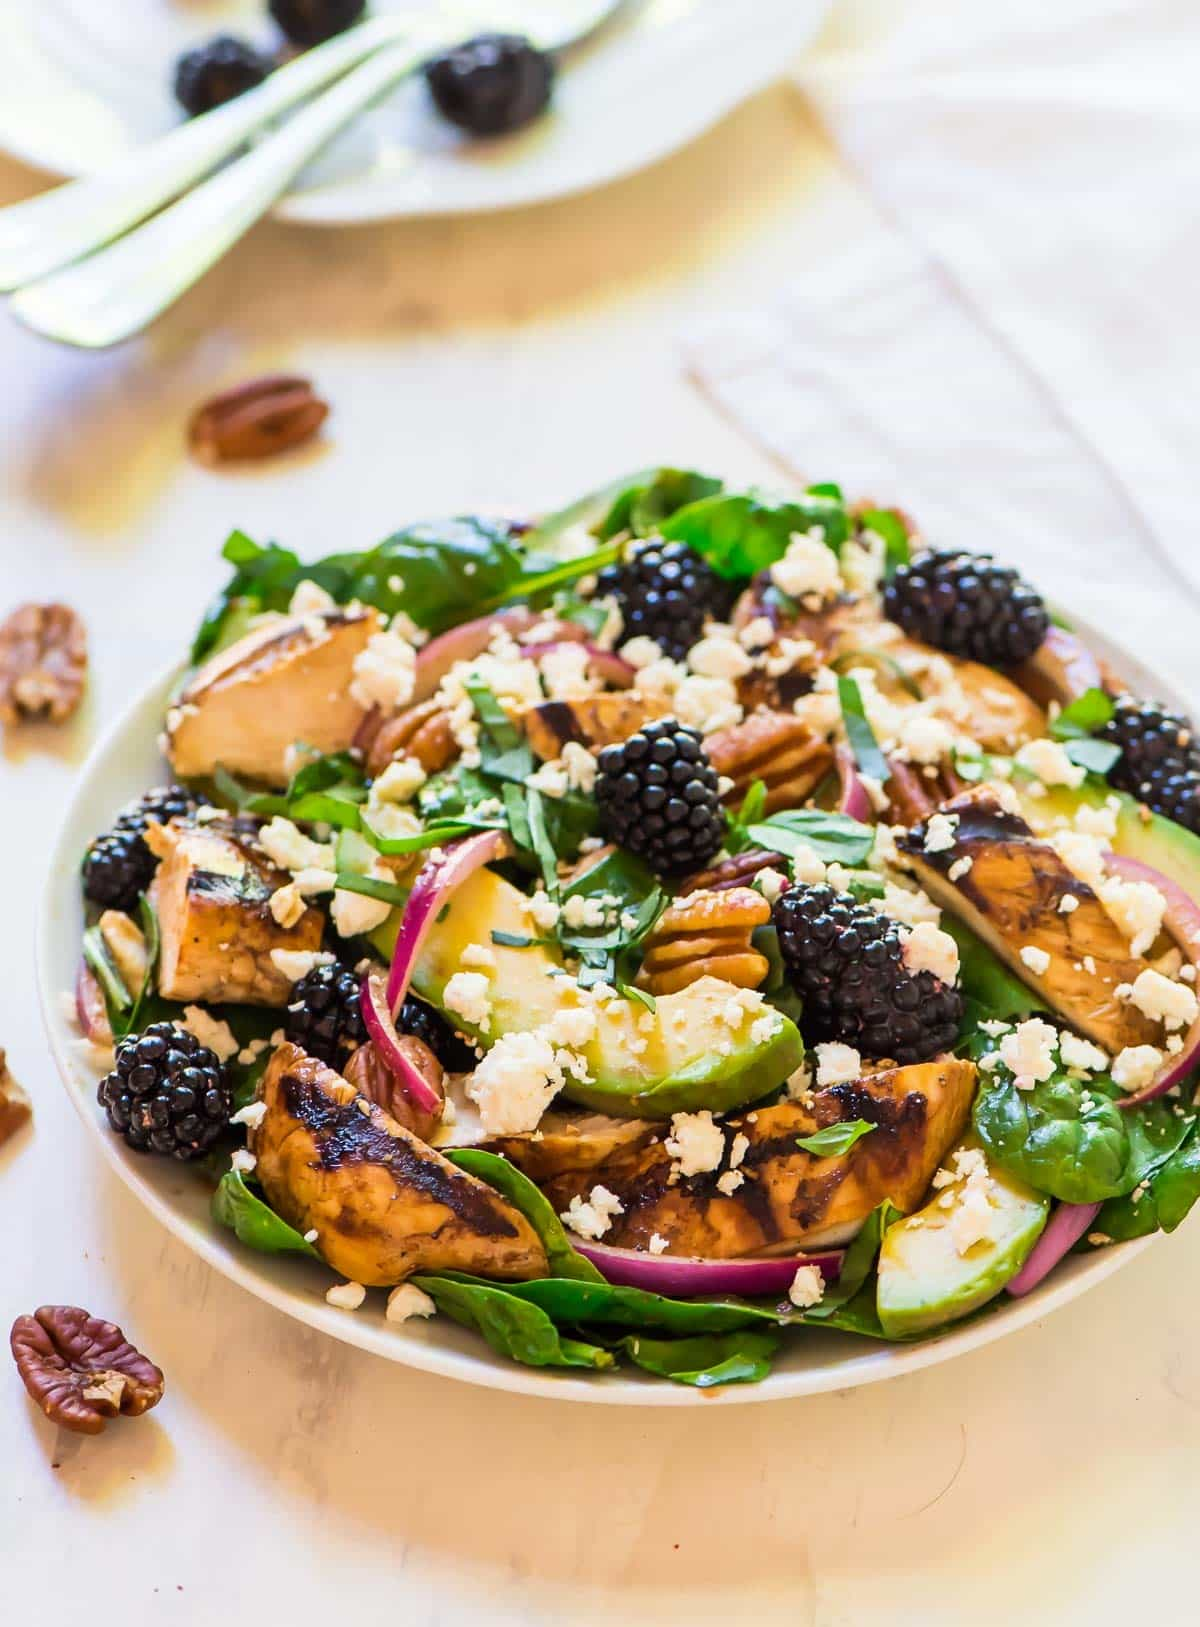 Grilled Balsamic Chicken Salad with Avocado, Feta, Blackberries and an easy balsamic vinaigrette dressing. Recipe at wellplated.com | @wellplated